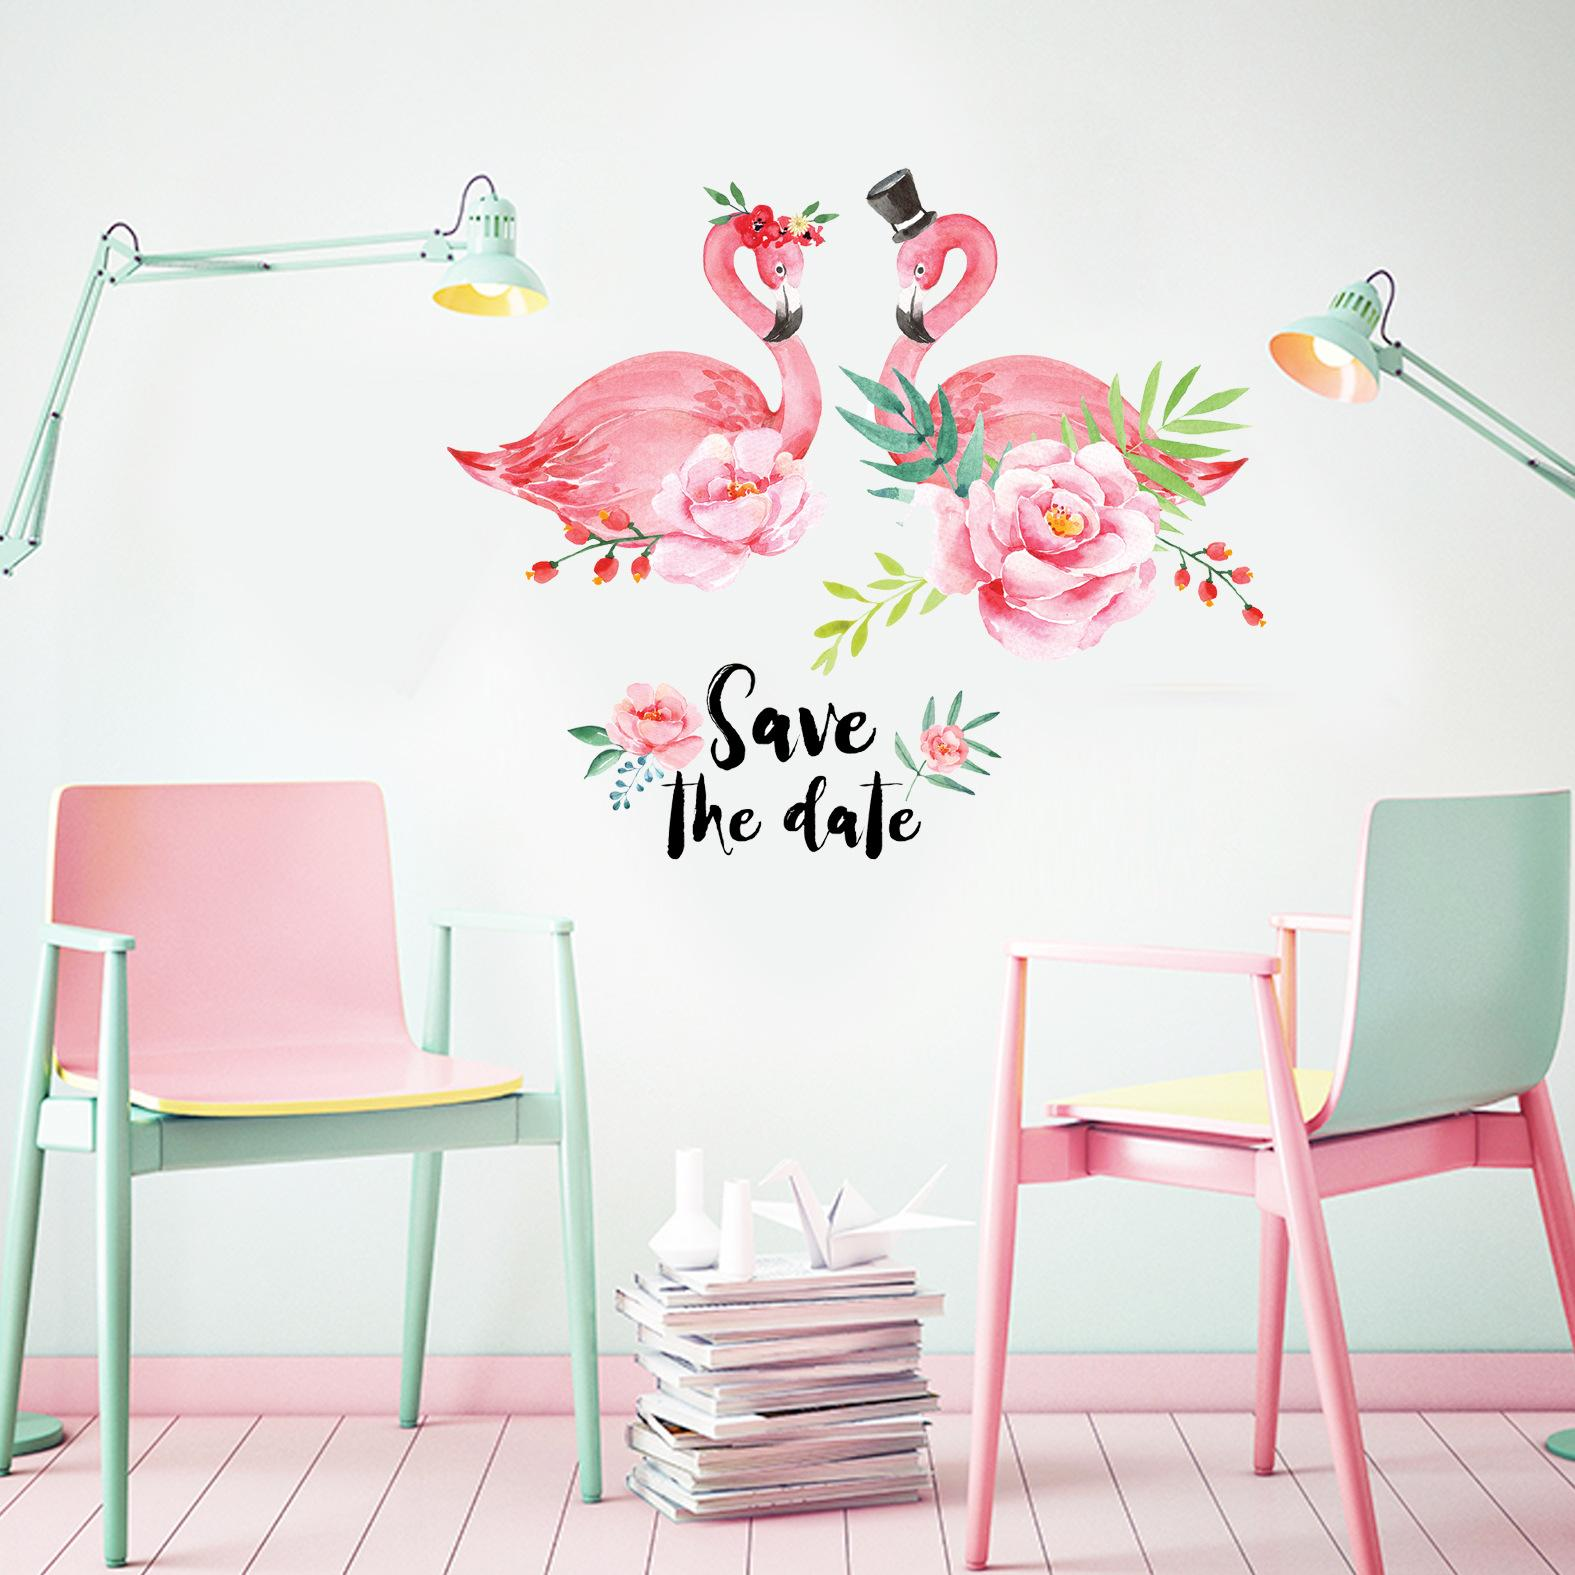 Jm 7340 new love flamingo wall bedroom background nordic ins sofa jm 7340 new love flamingo wall bedroom background nordic ins sofa bedside art stickers buy wall stickers chandelier wall decal from besthomelife arubaitofo Gallery